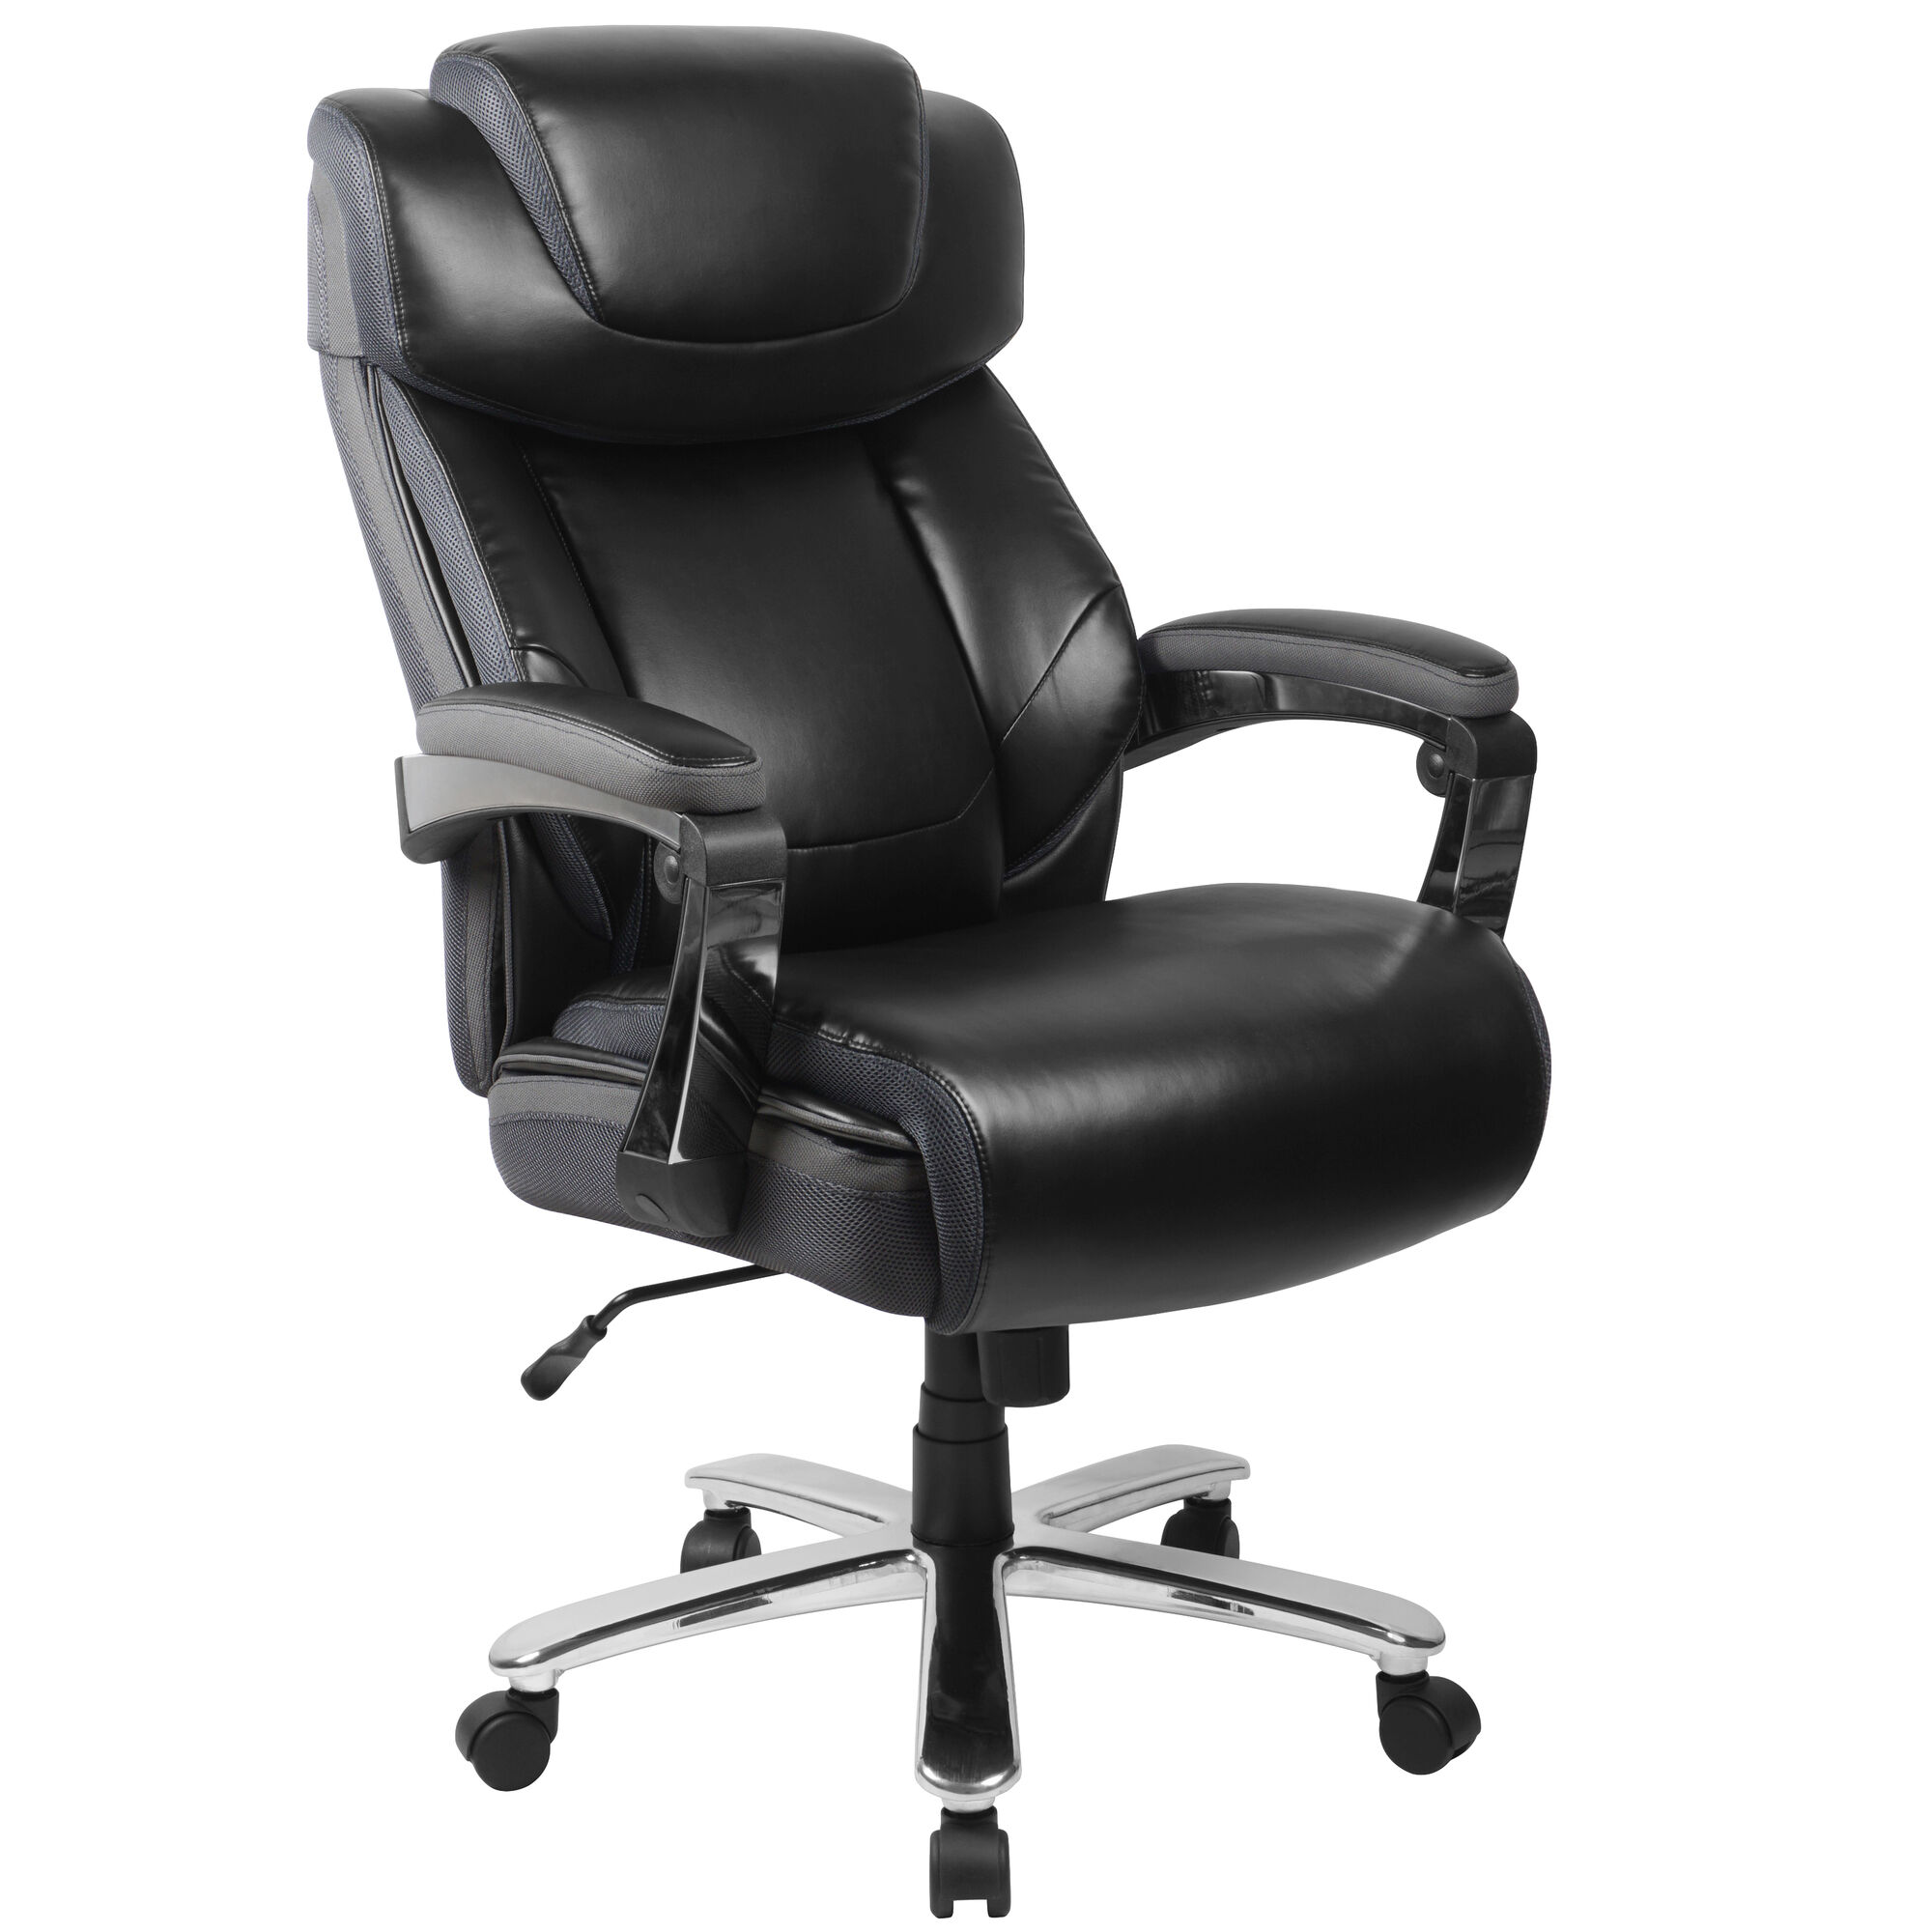 Peachy Hercules Series Big Tall 500 Lb Rated Black Leather Executive Swivel Ergonomic Office Chair With Adjustable Headrest Download Free Architecture Designs Grimeyleaguecom